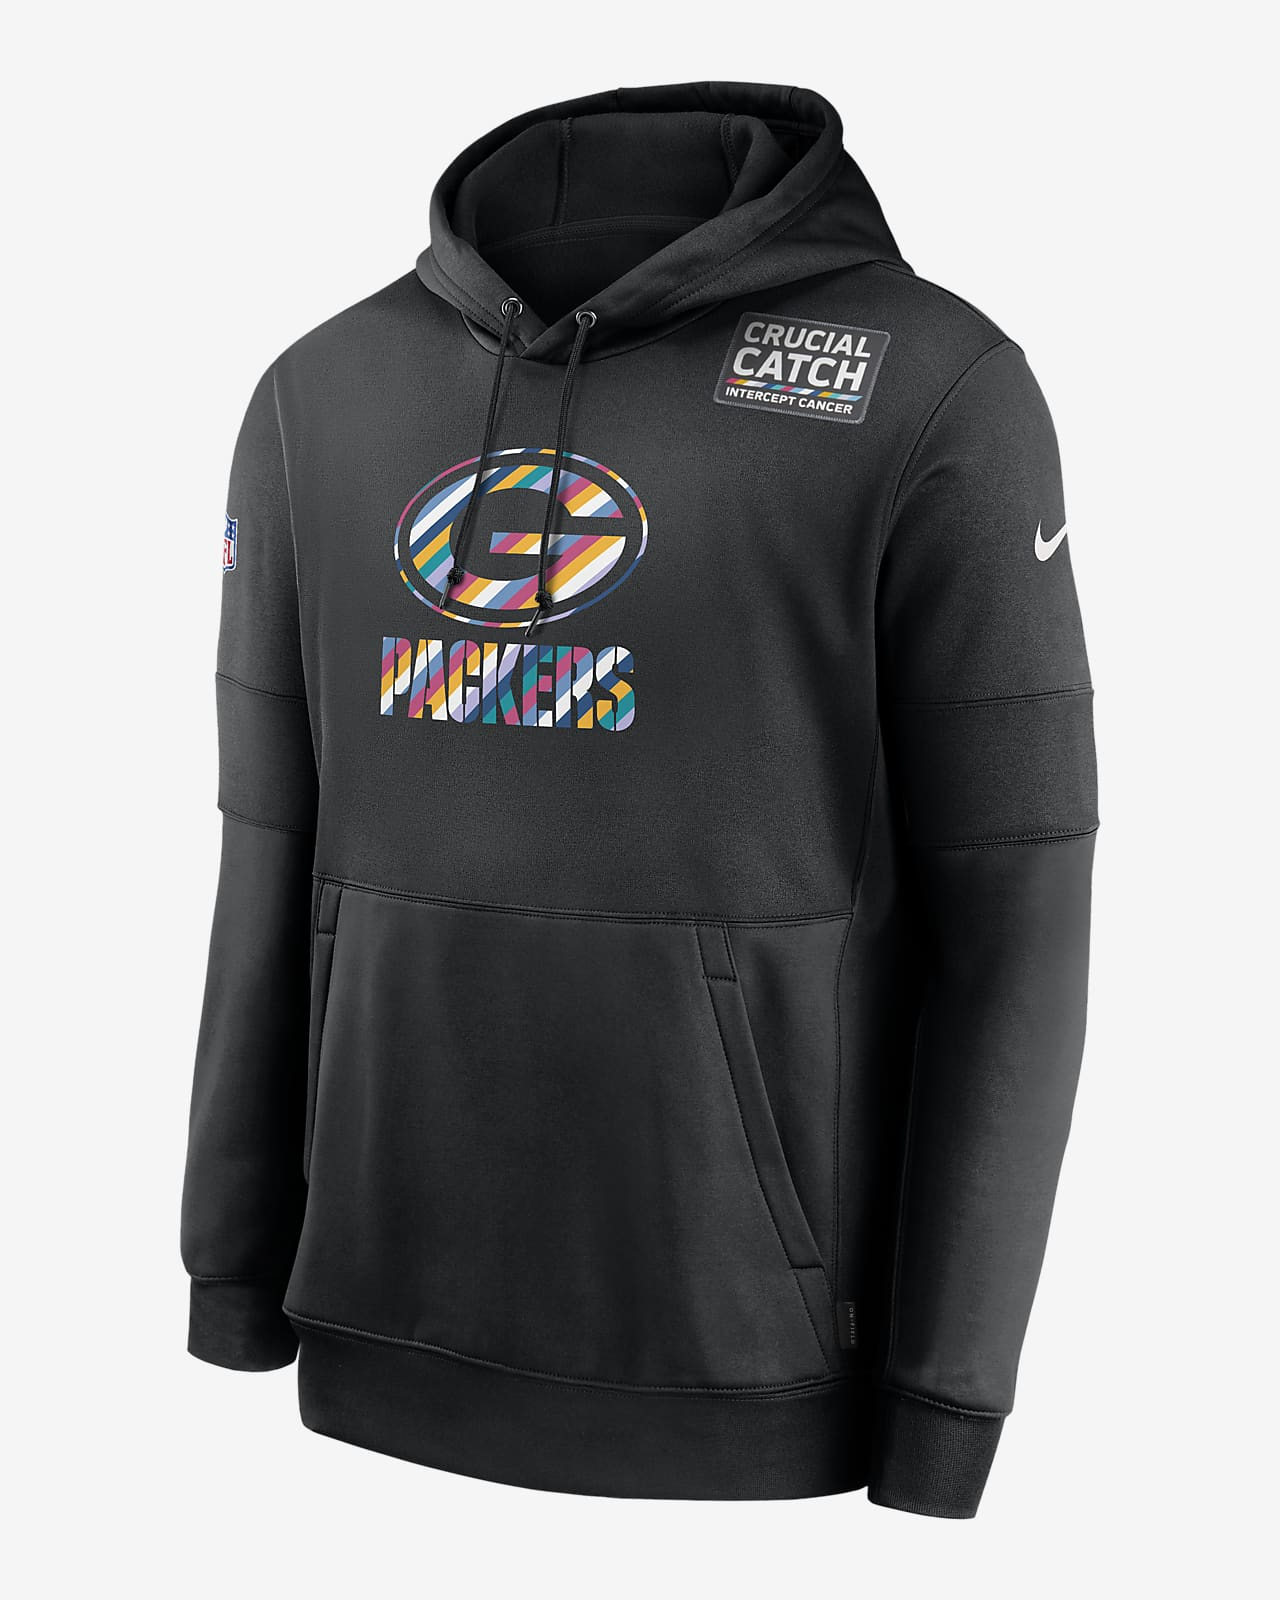 Nike Therma Crucial Catch (NFL Packers) Men's Hoodie